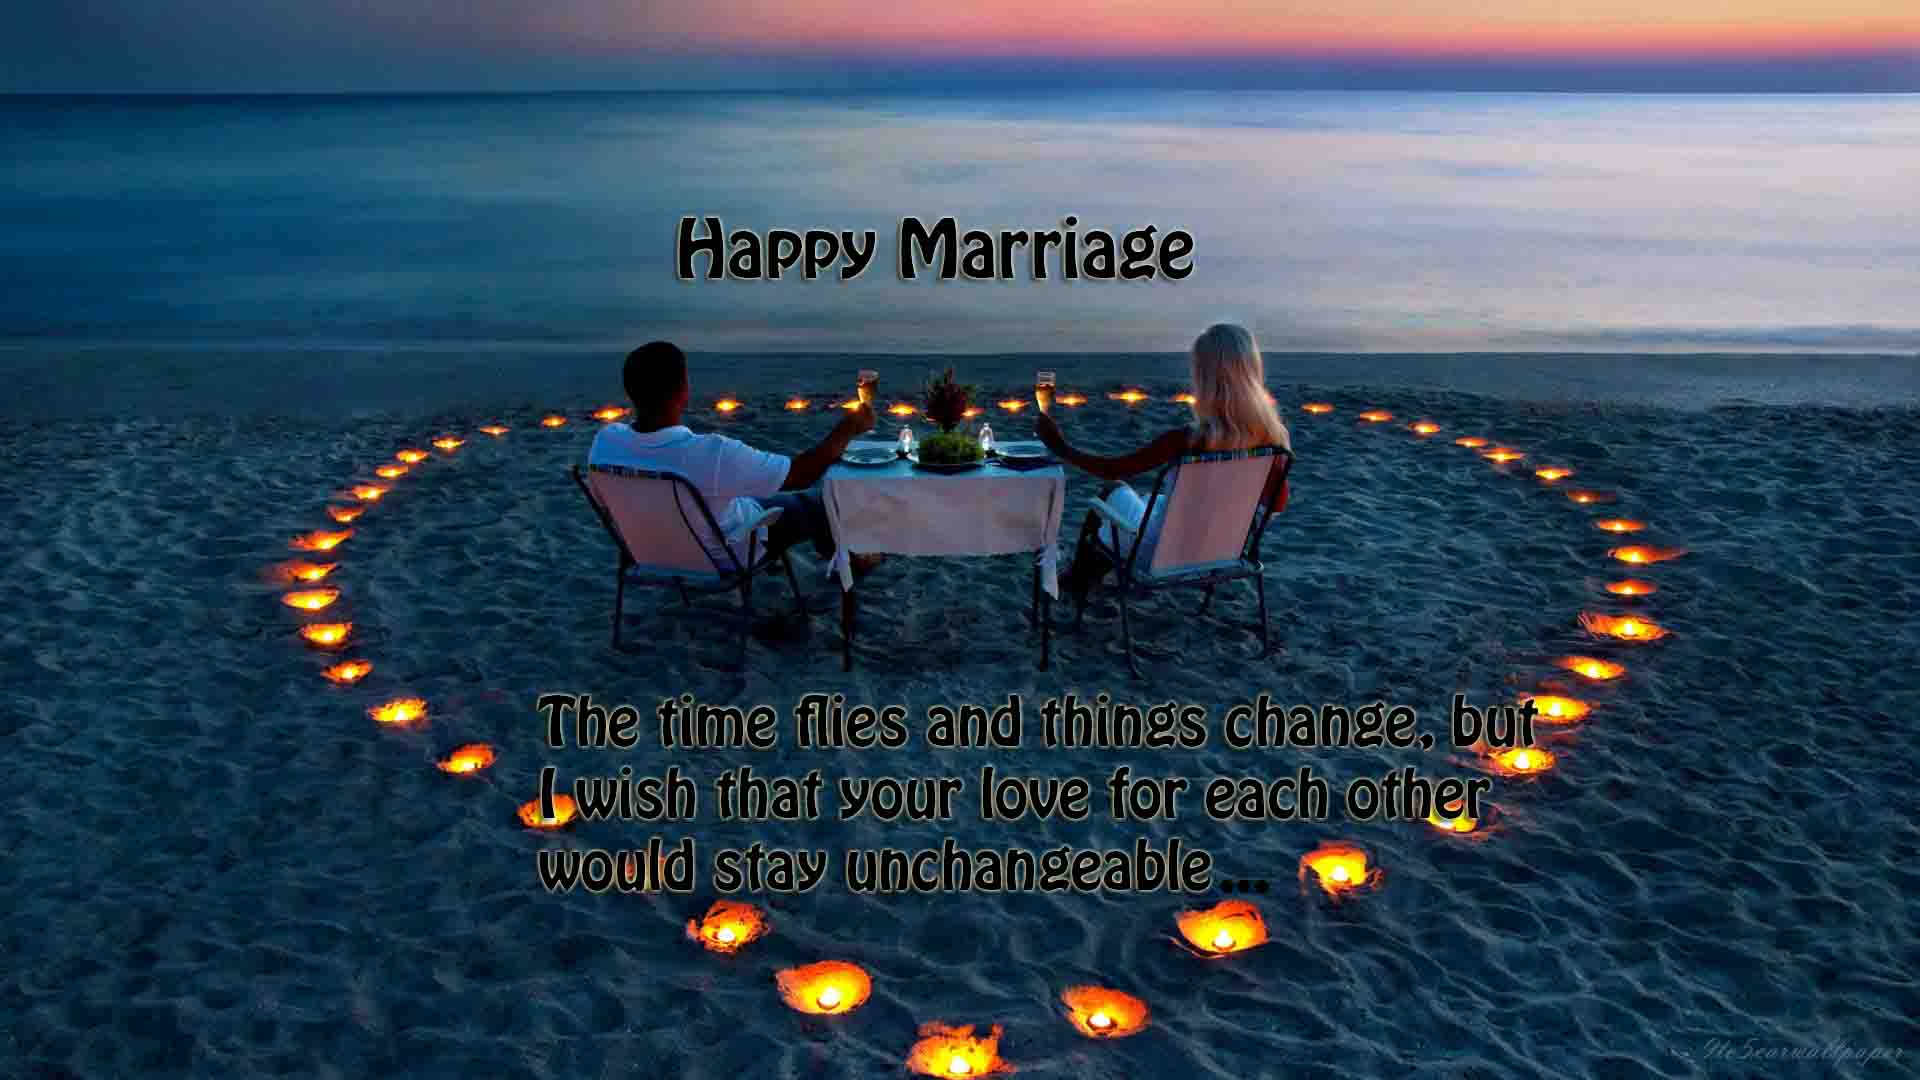 Hope You Like Them. Happy Marriage Quotes 2017 Images Wishes